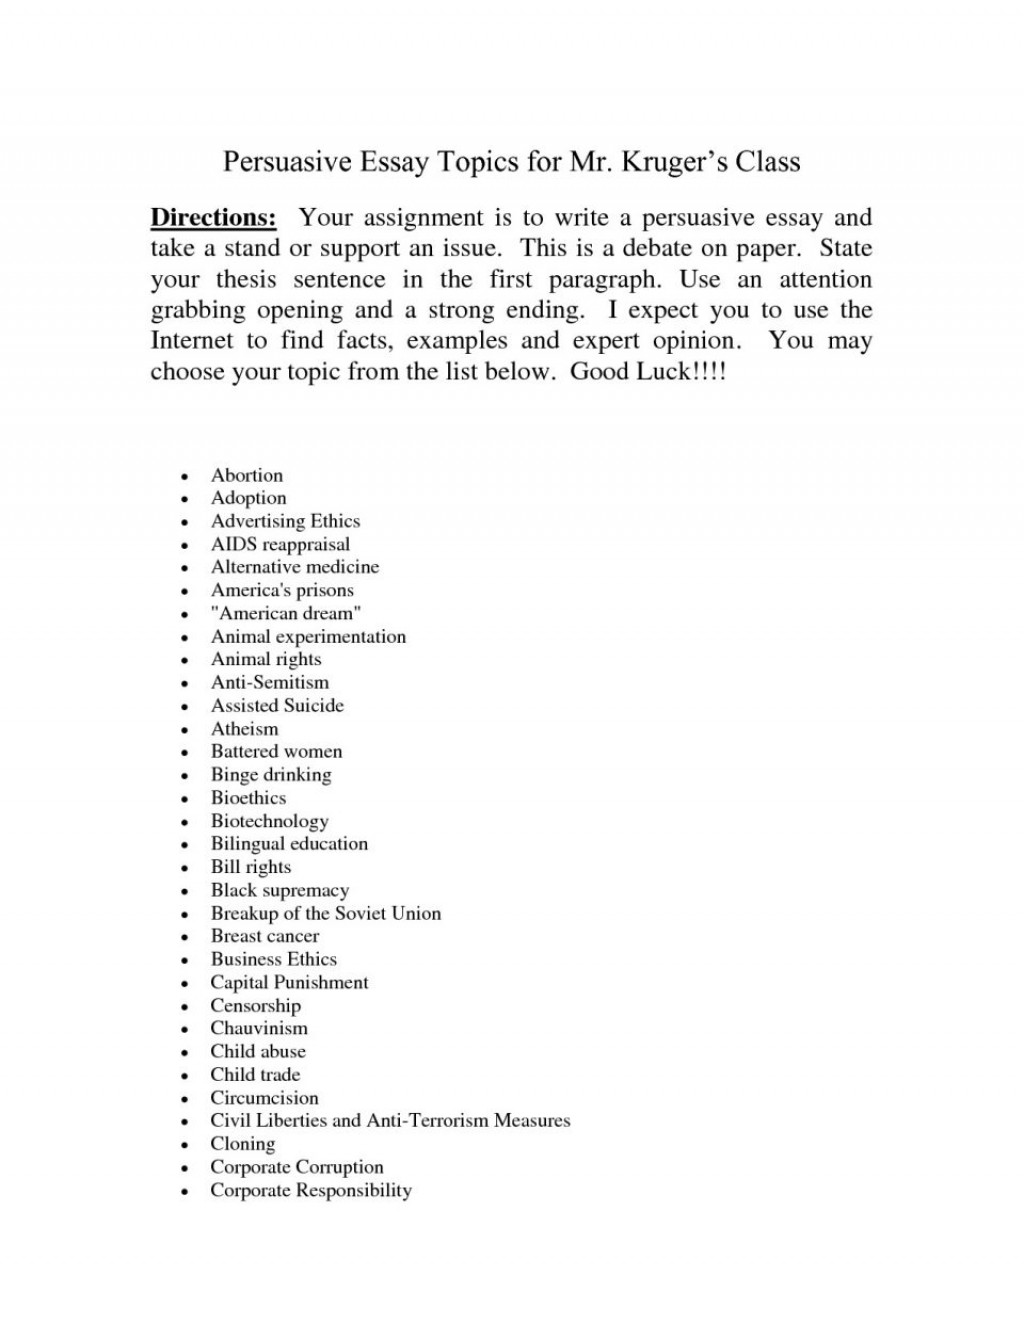 008 Research Paper Topics For Business Topic Essay Barca Fontanacountryinn Within Good Persuasive Narrative To Write Abo Easy About Personal Descriptive Unique Information Systems Students Large